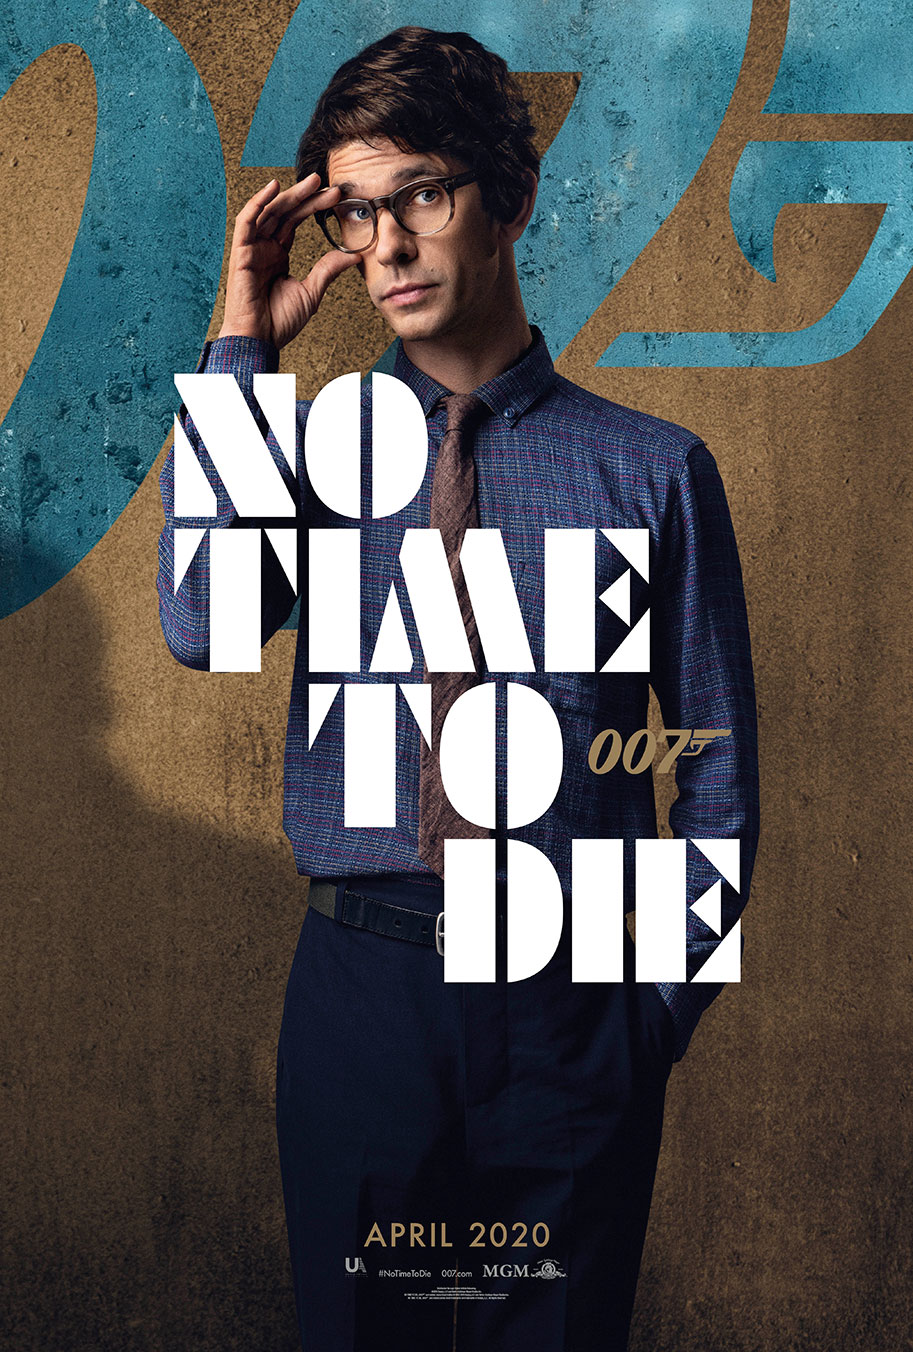 NO TIME TO DIE POSTER (#9 OF 12) - OKAY BHARGAV